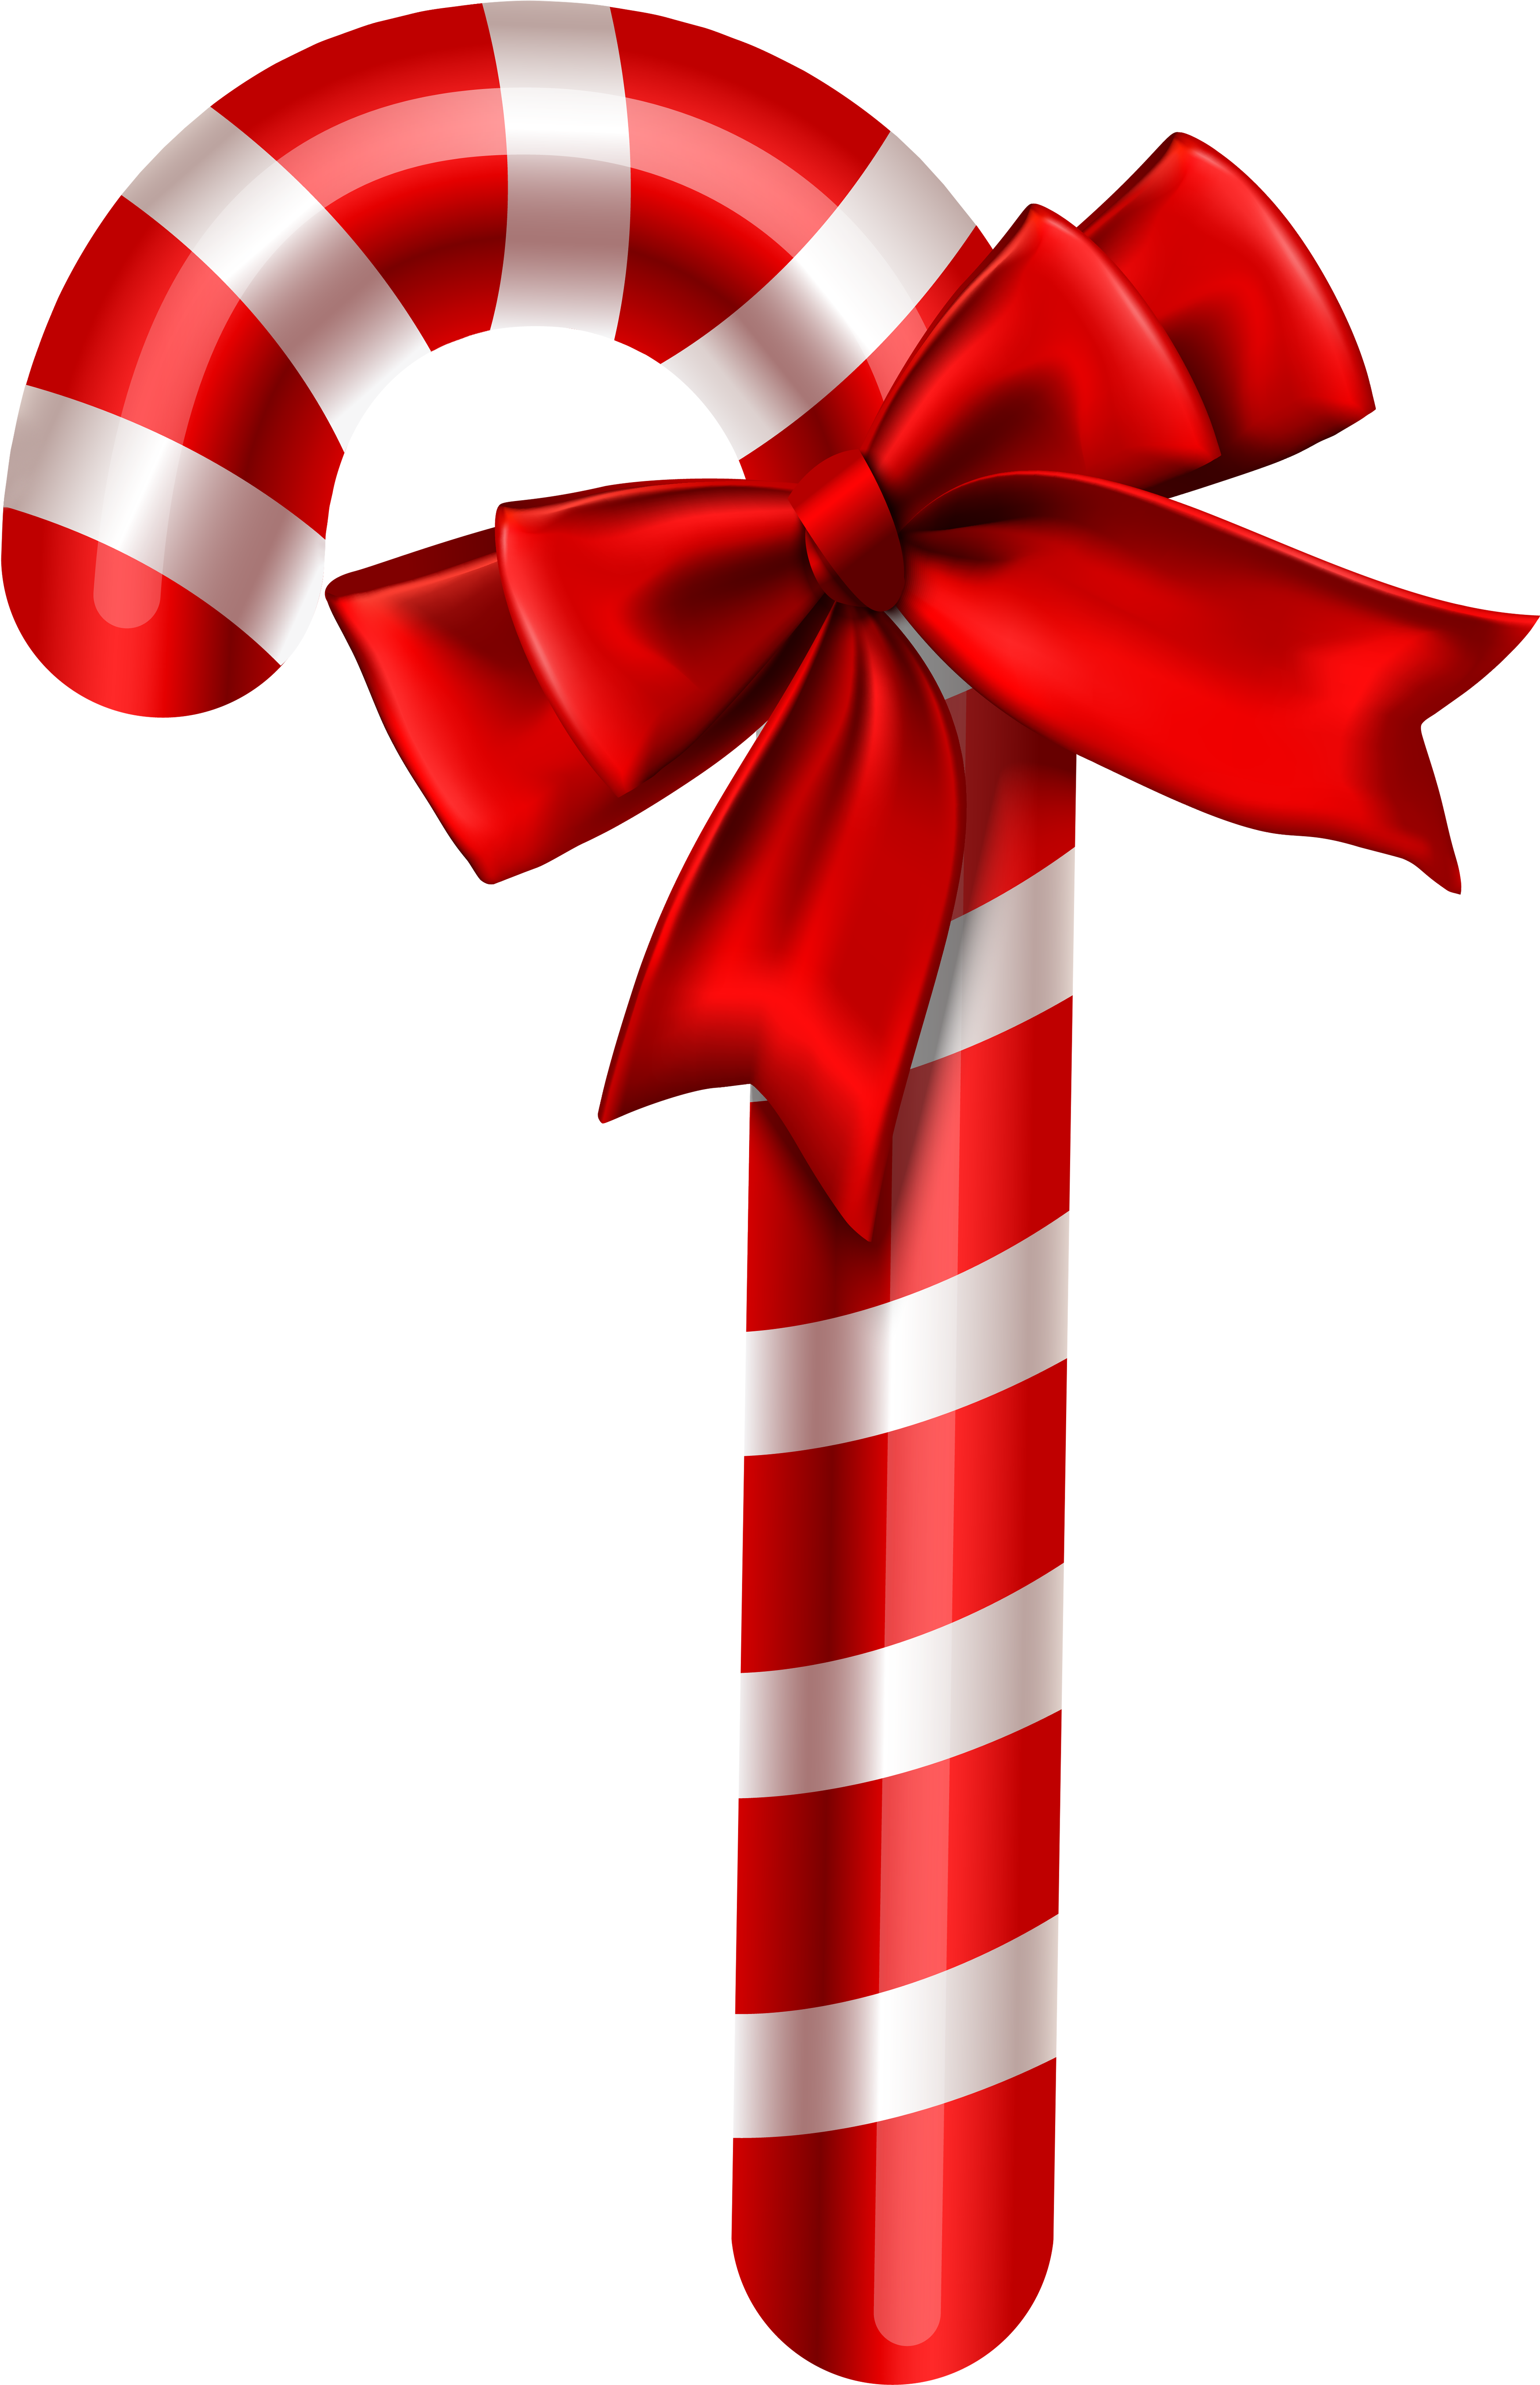 christmas candy png image purepng free transparent cc0 png image library - Christmas Candy